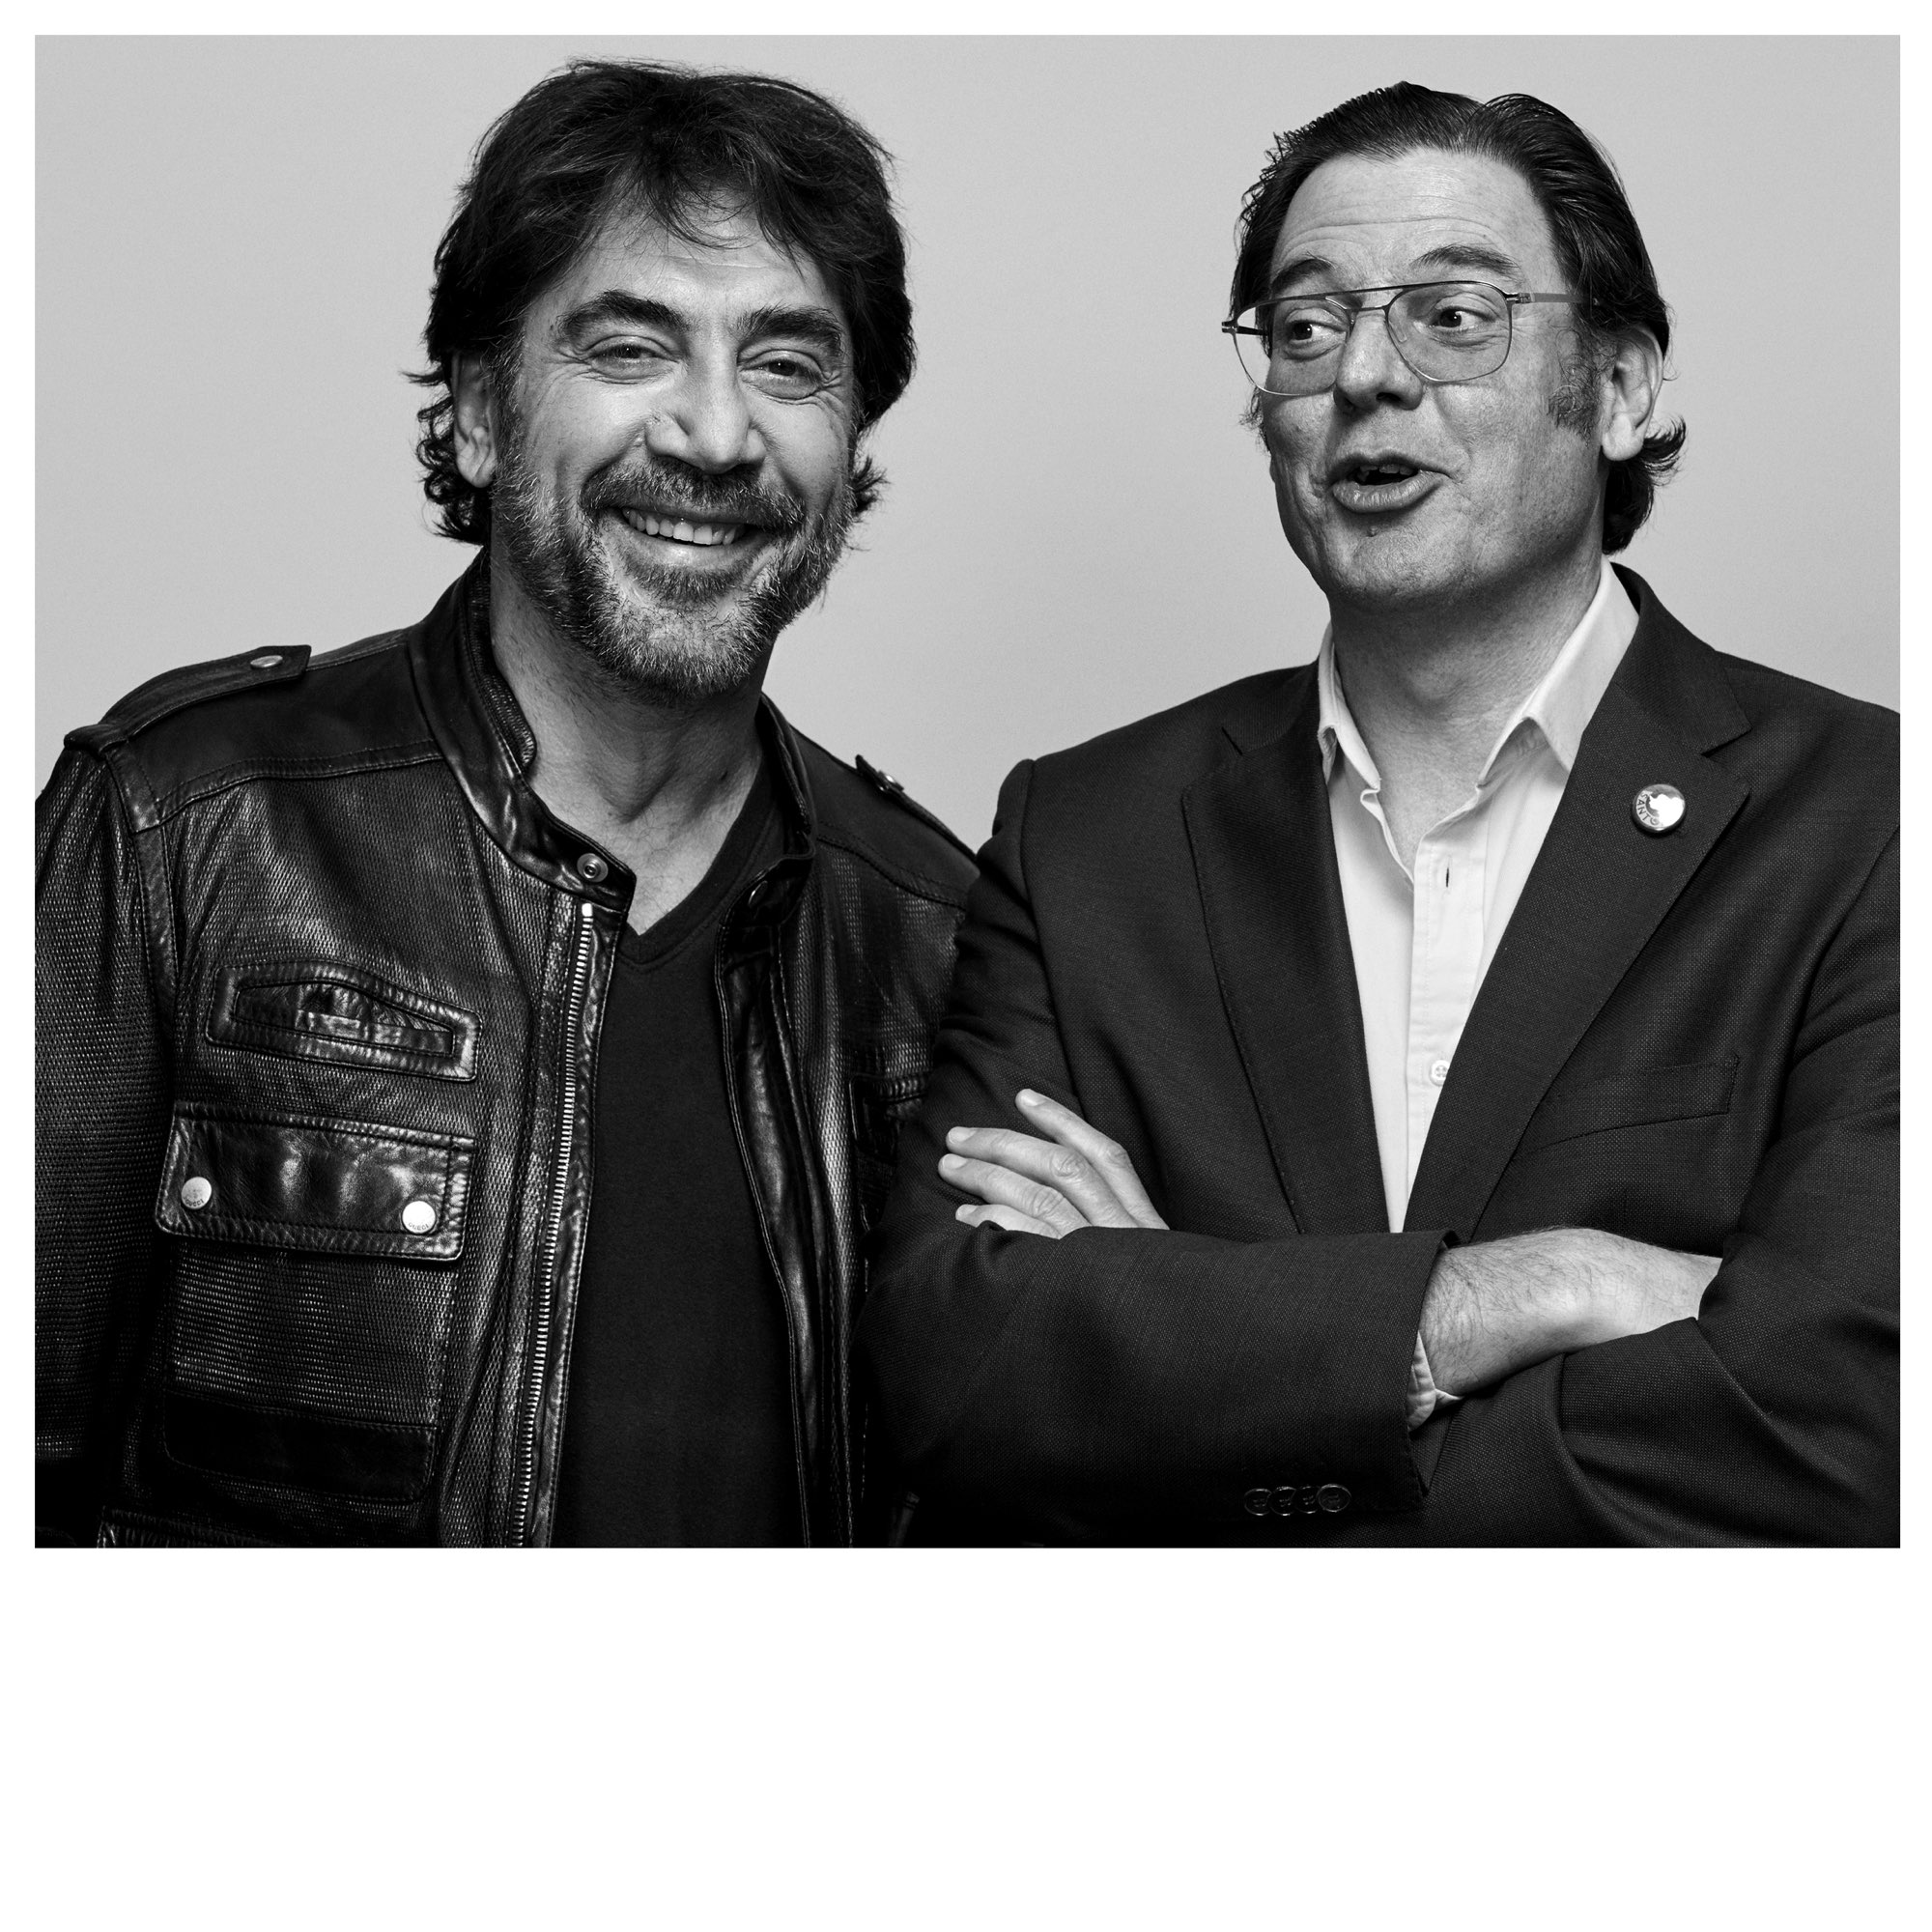 Hair, Nail, Make-up und Fashion styling portfolio / fabienne-pauli - javier-bardem---alvaro-longoria-photo-by-sven-baenziger-at-zff-ID555-1.jpeg?v=1589294705